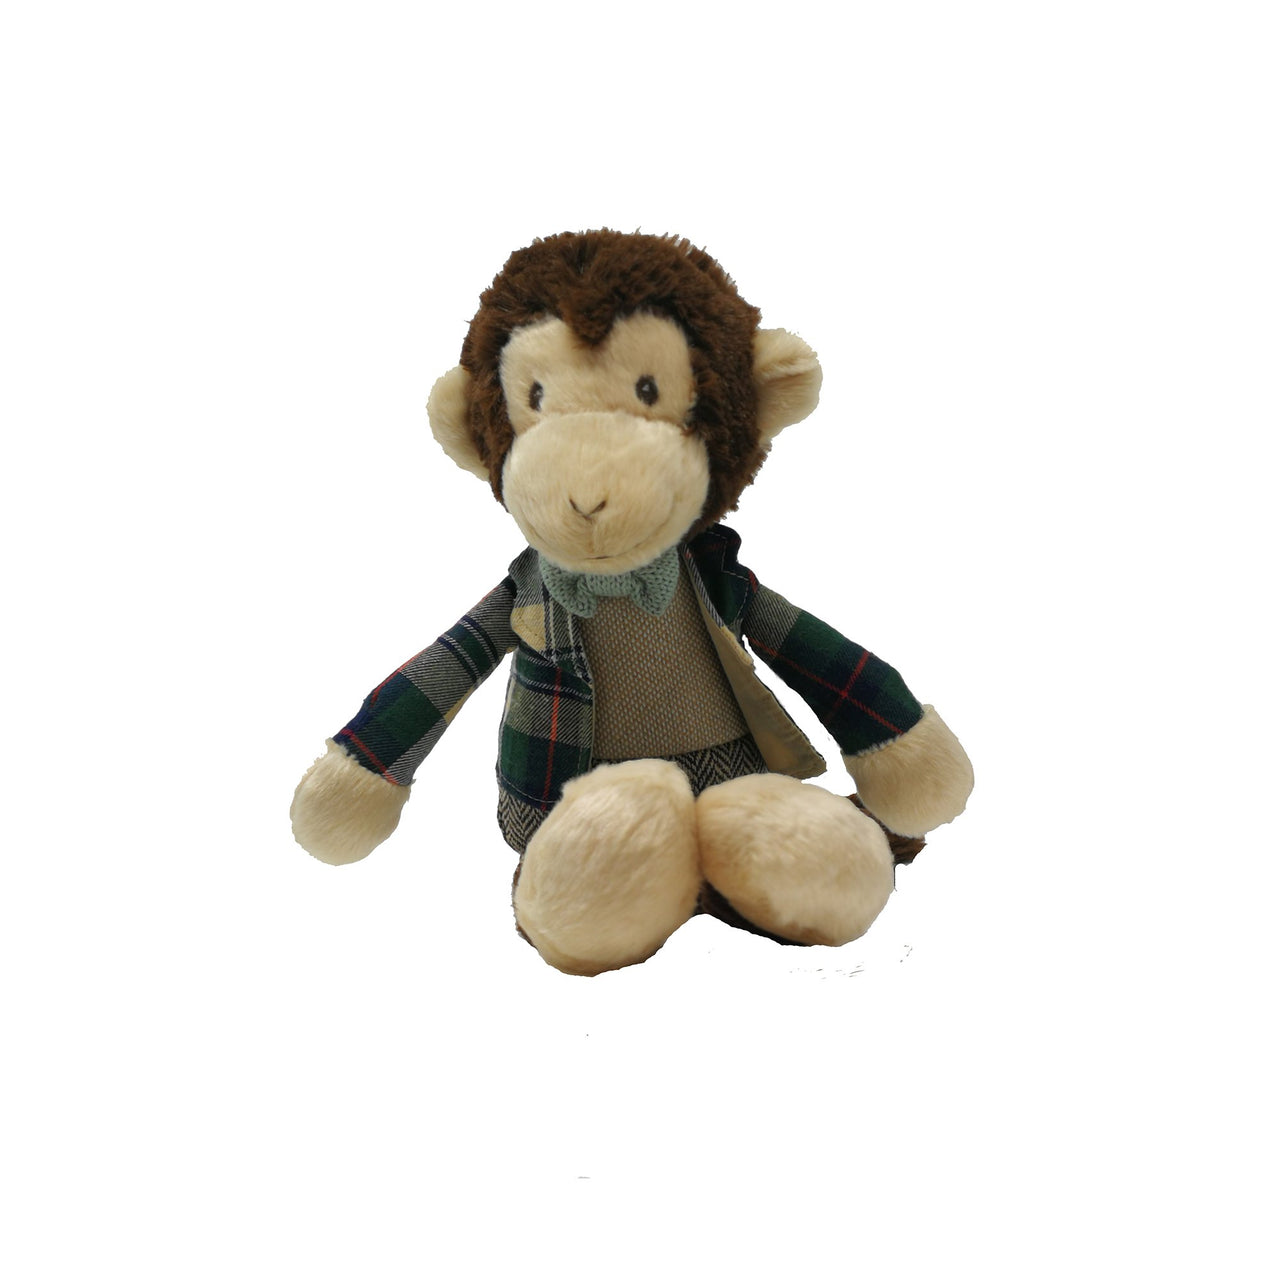 Meet Stu, the strikingly handsome and friendly monkey. Stu is very dapper in his tweed trousers, tartan jacket and knitted bow tie. A collectible soft toy if ever there was one!